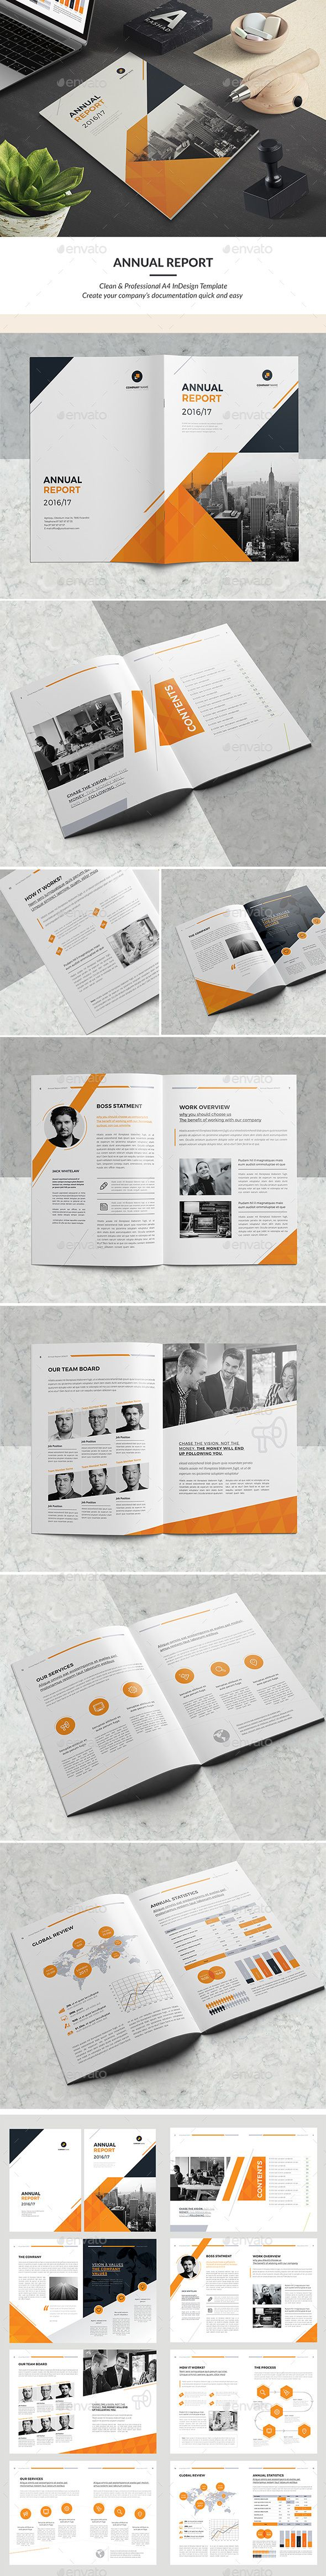 Clean Annual Report Design Template - Corporate Brochures Design Template InDesign INDD. Download here: https://graphicriver.net/item/clean-annual-report/19184304?ref=yinkira